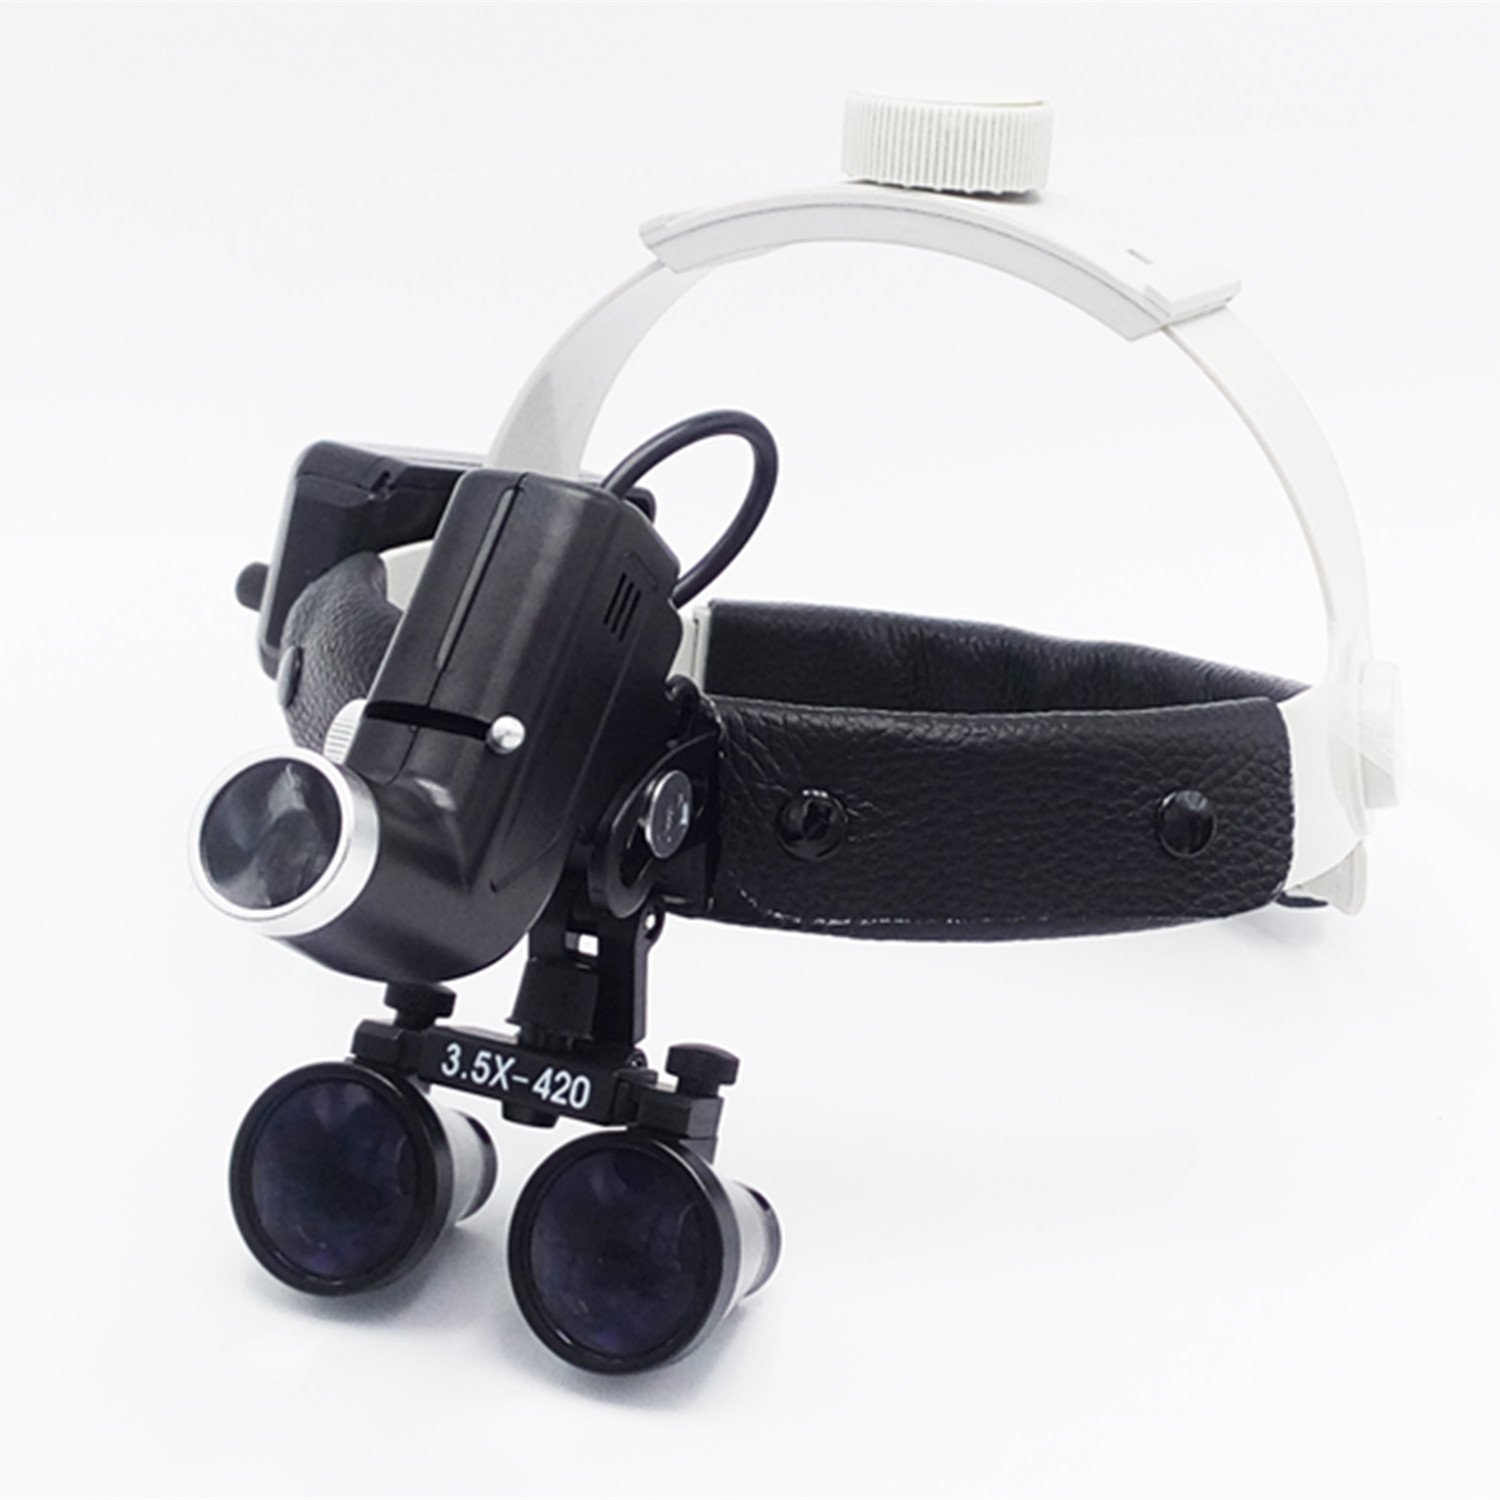 3.5X420mm Working Distance Headband Loupe With light Special Use For E.N.T Department DY-106(black) by Pwhite